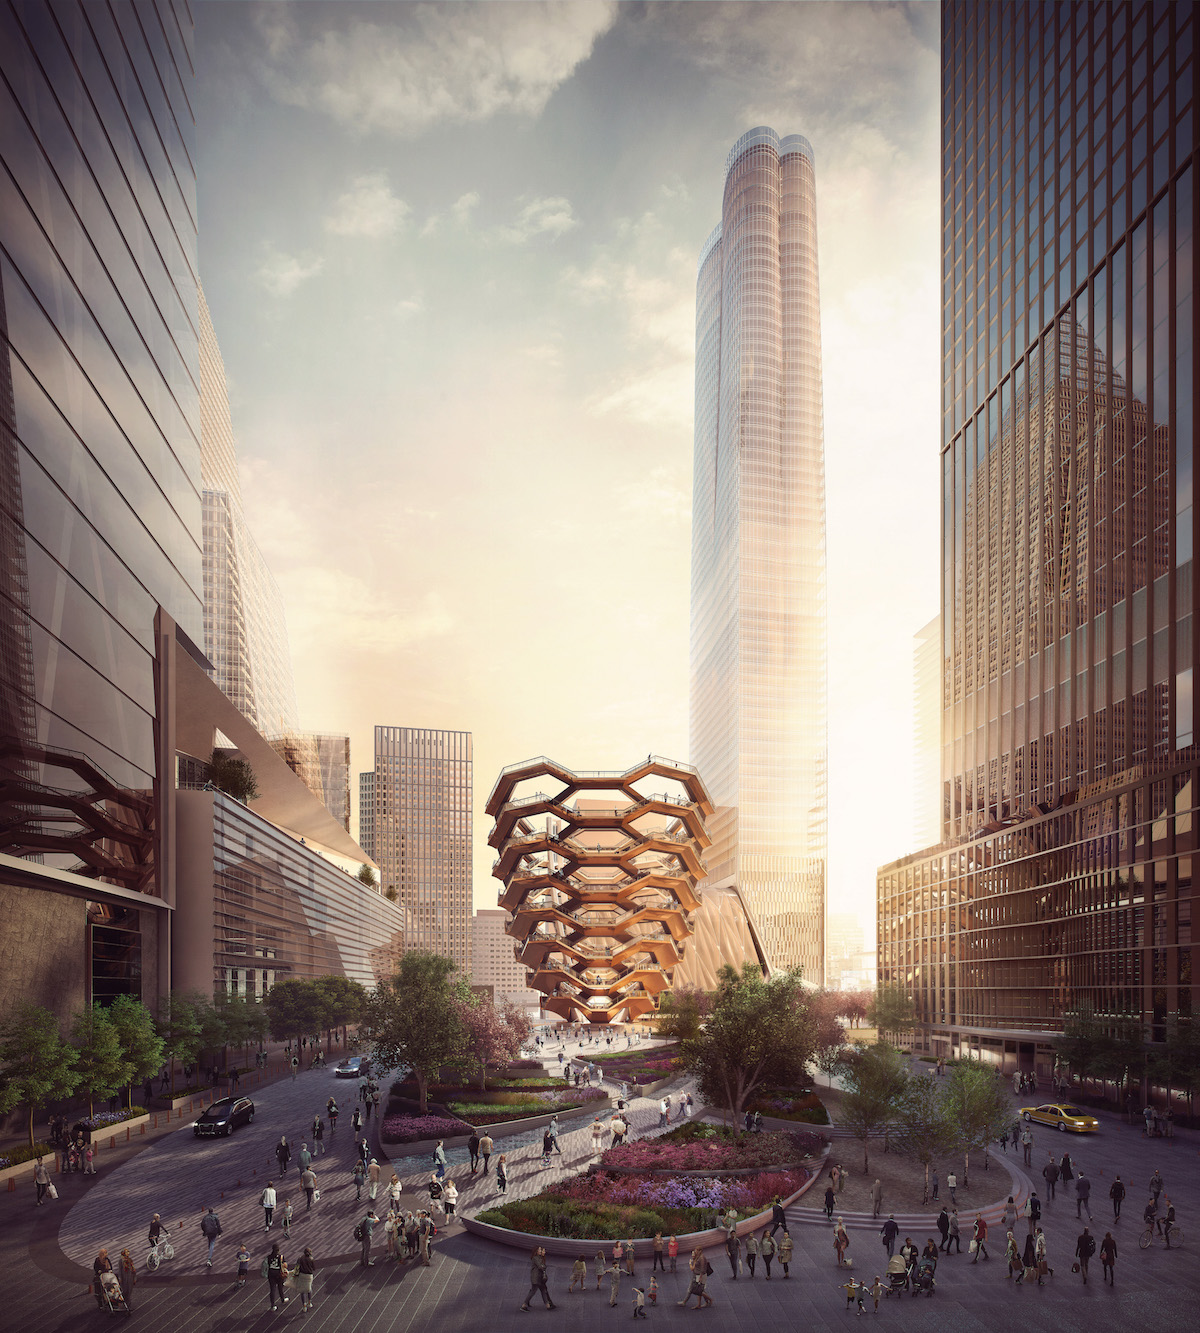 View-of-the-Public-Square-and-Gardens-Looking-South-from-33rd-St.-courtesy-of-Forbes-Massie-Heatherwick-Studio